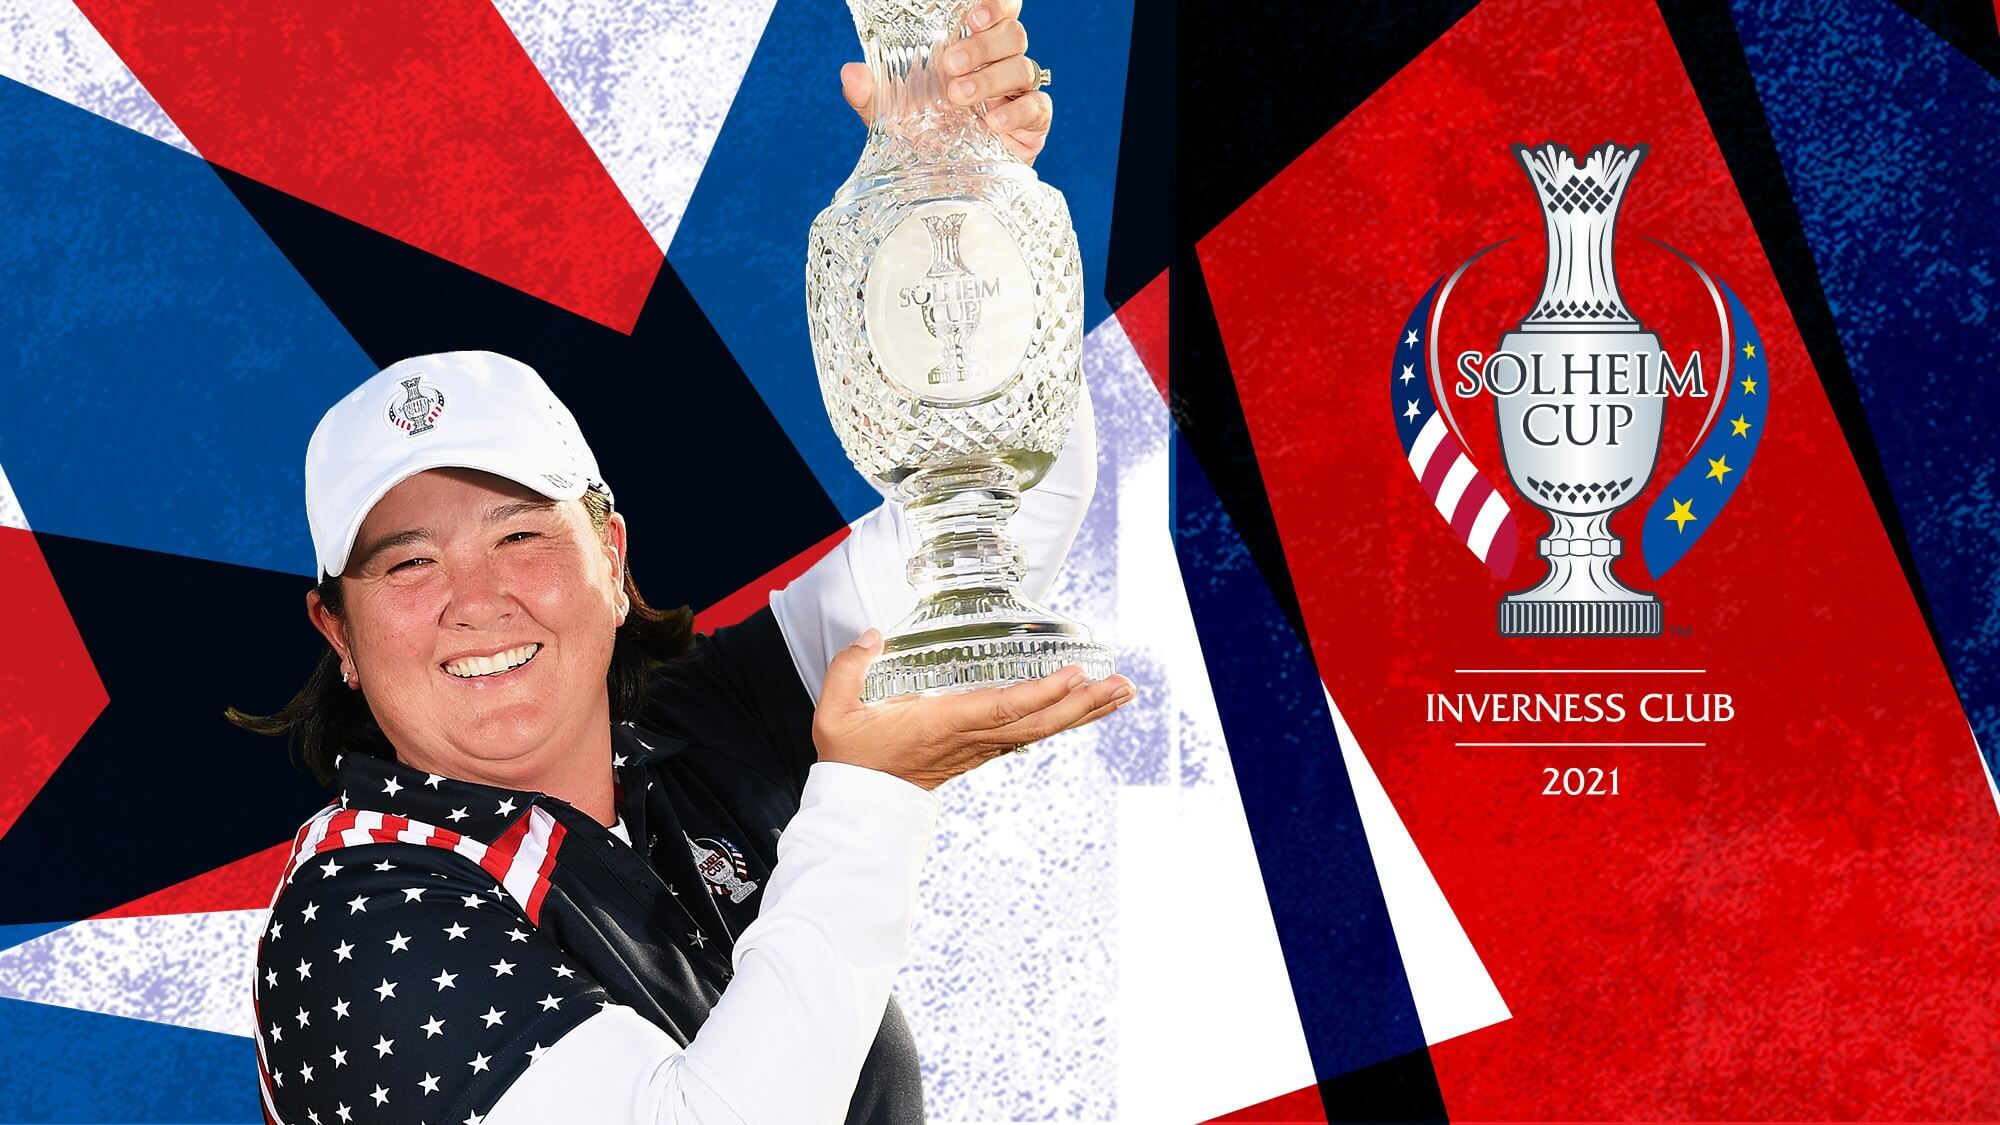 2021 Solheim Cup - Toledo, Ohio Packages Available Now...